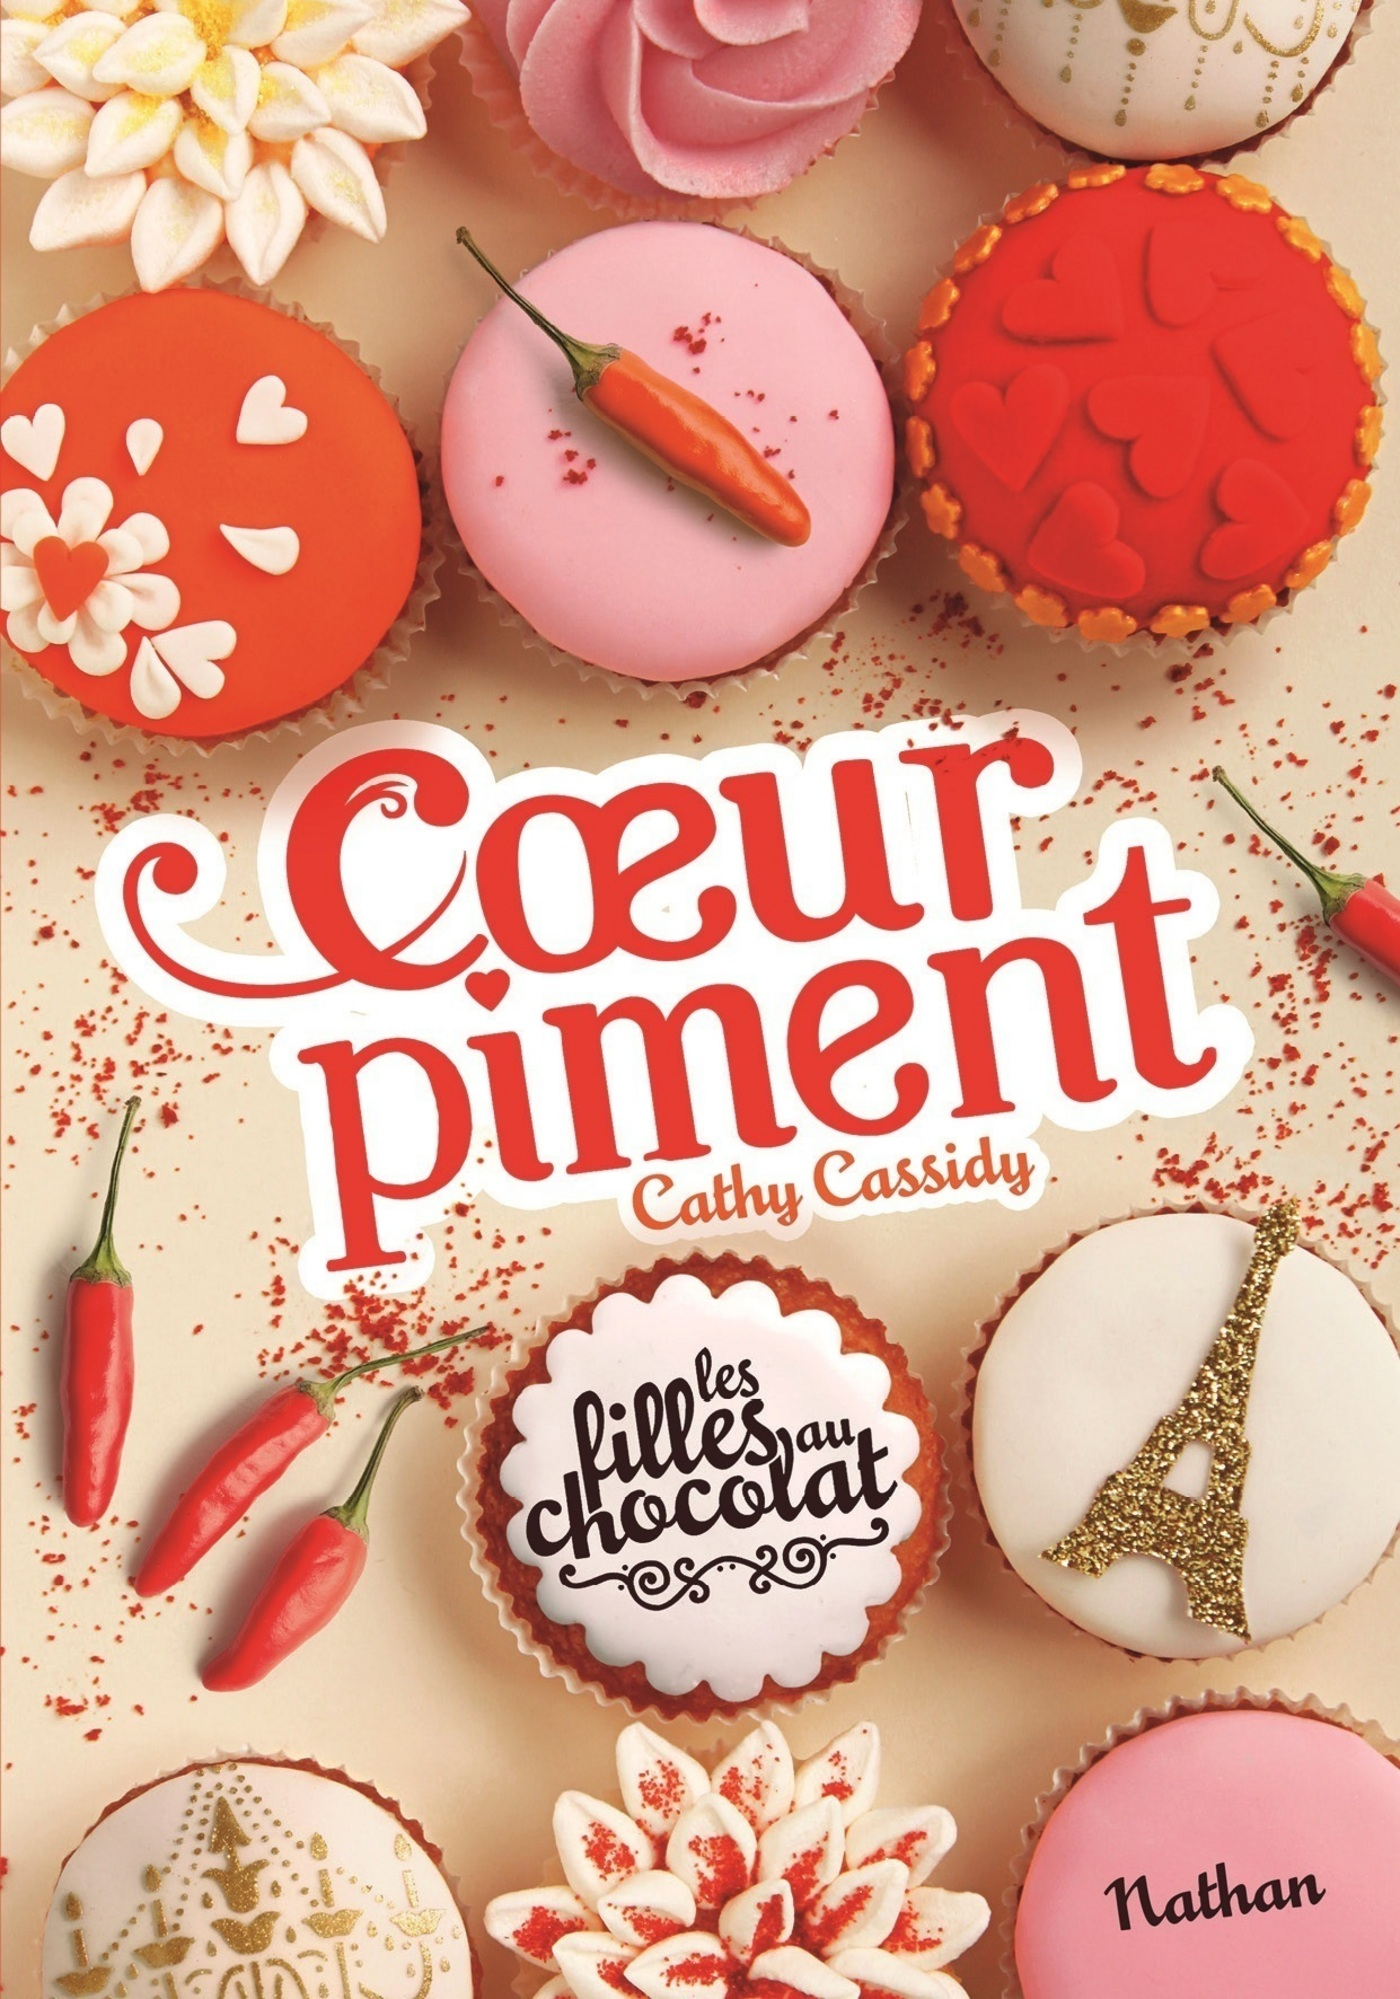 Coeur Piment | Cassidy, Cathy